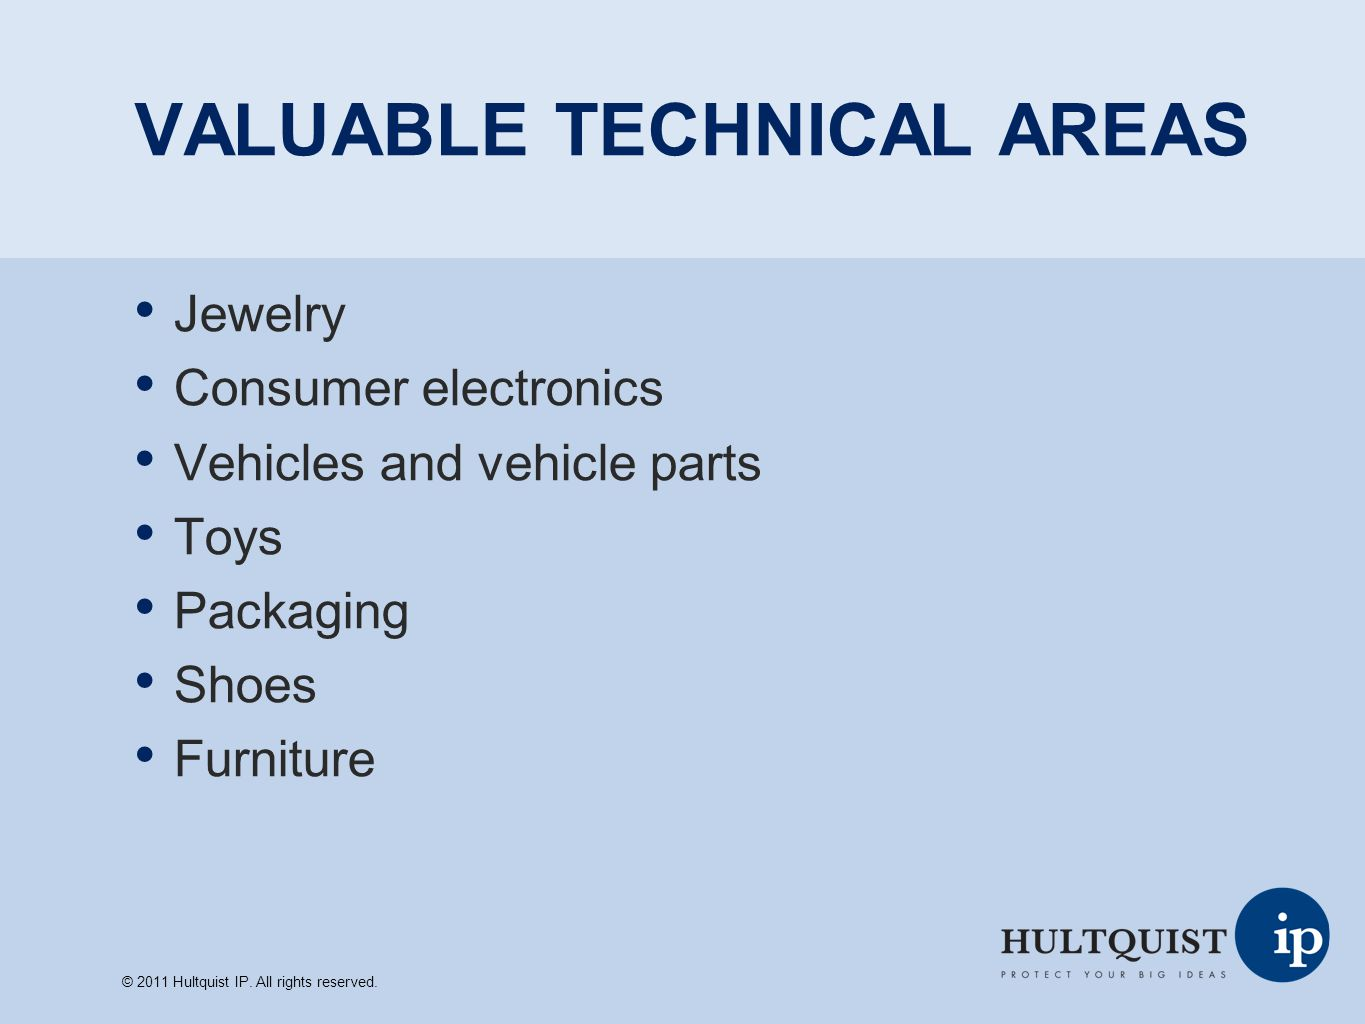 VALUABLE TECHNICAL AREAS